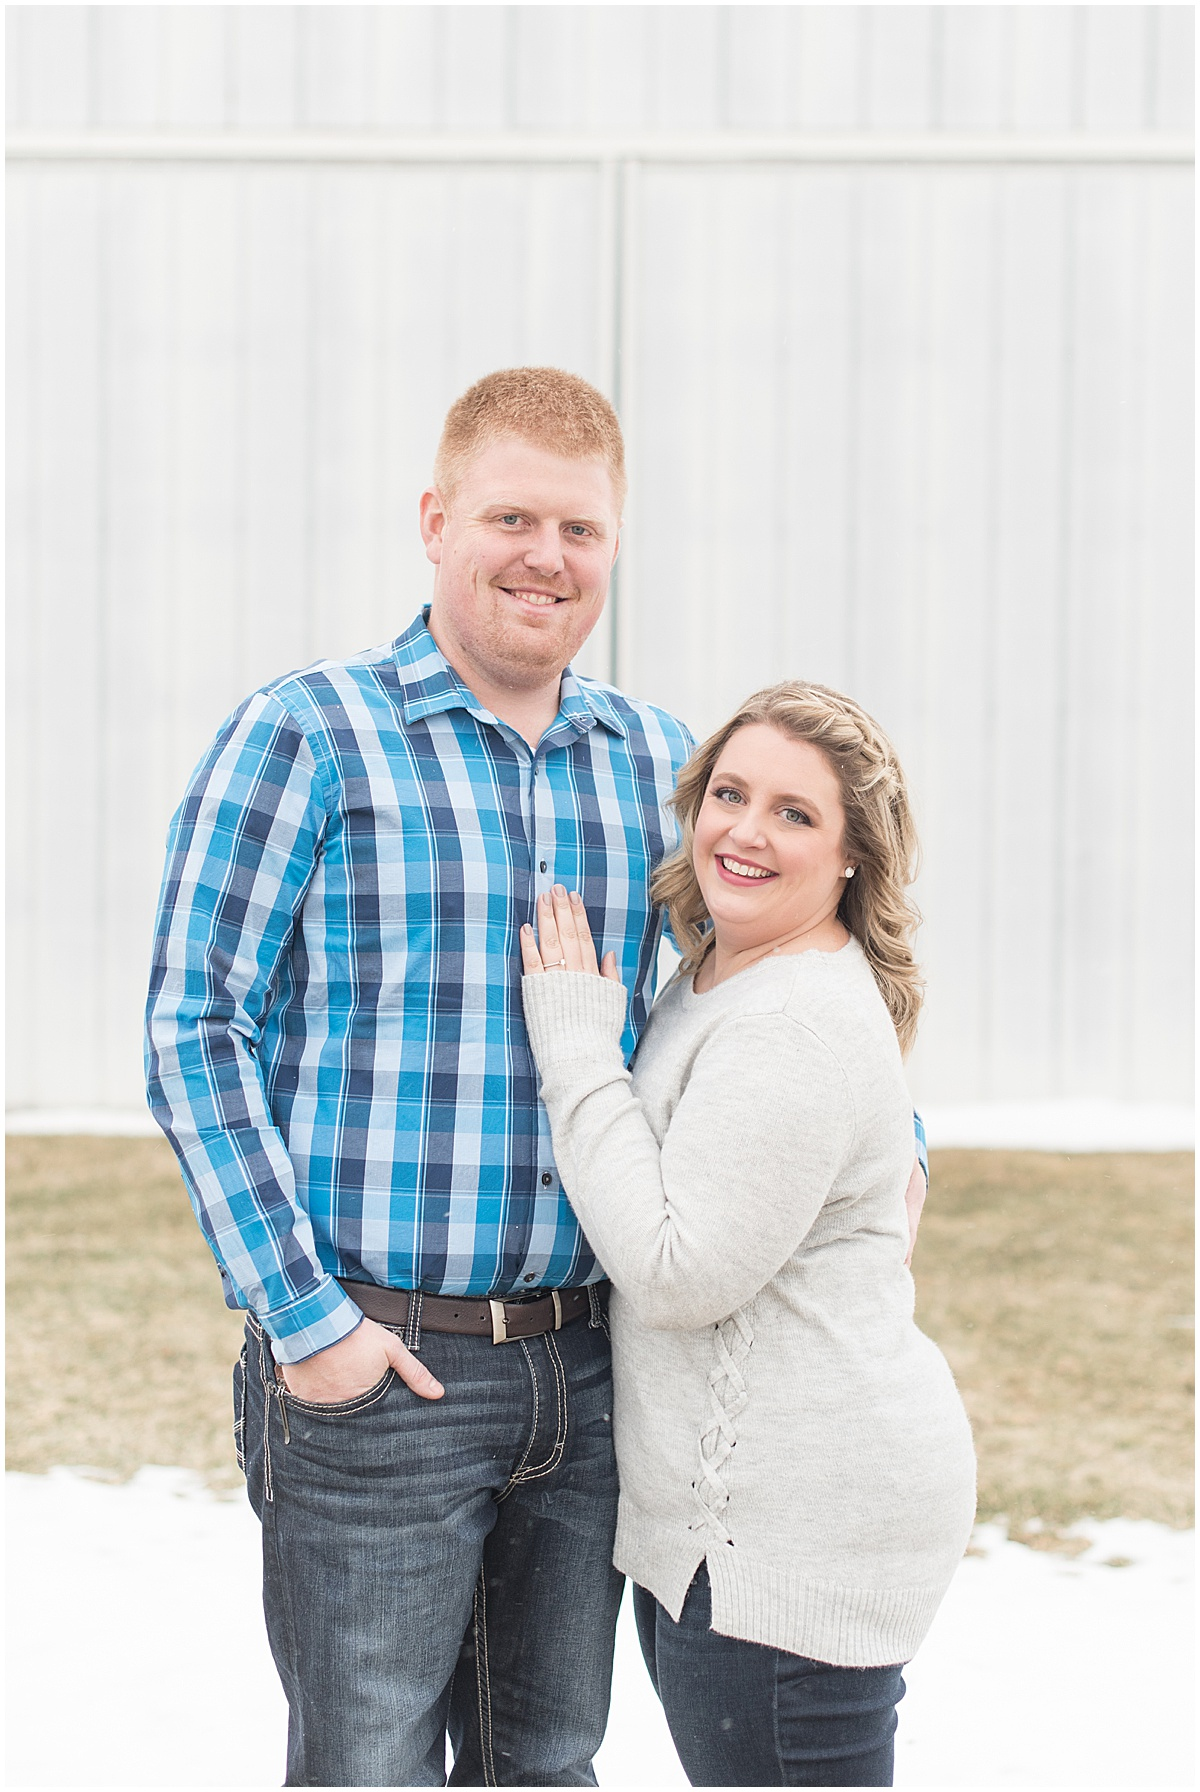 Ryan & Katie - Country Engagement Photos in Otterbein Indiana1.jpg